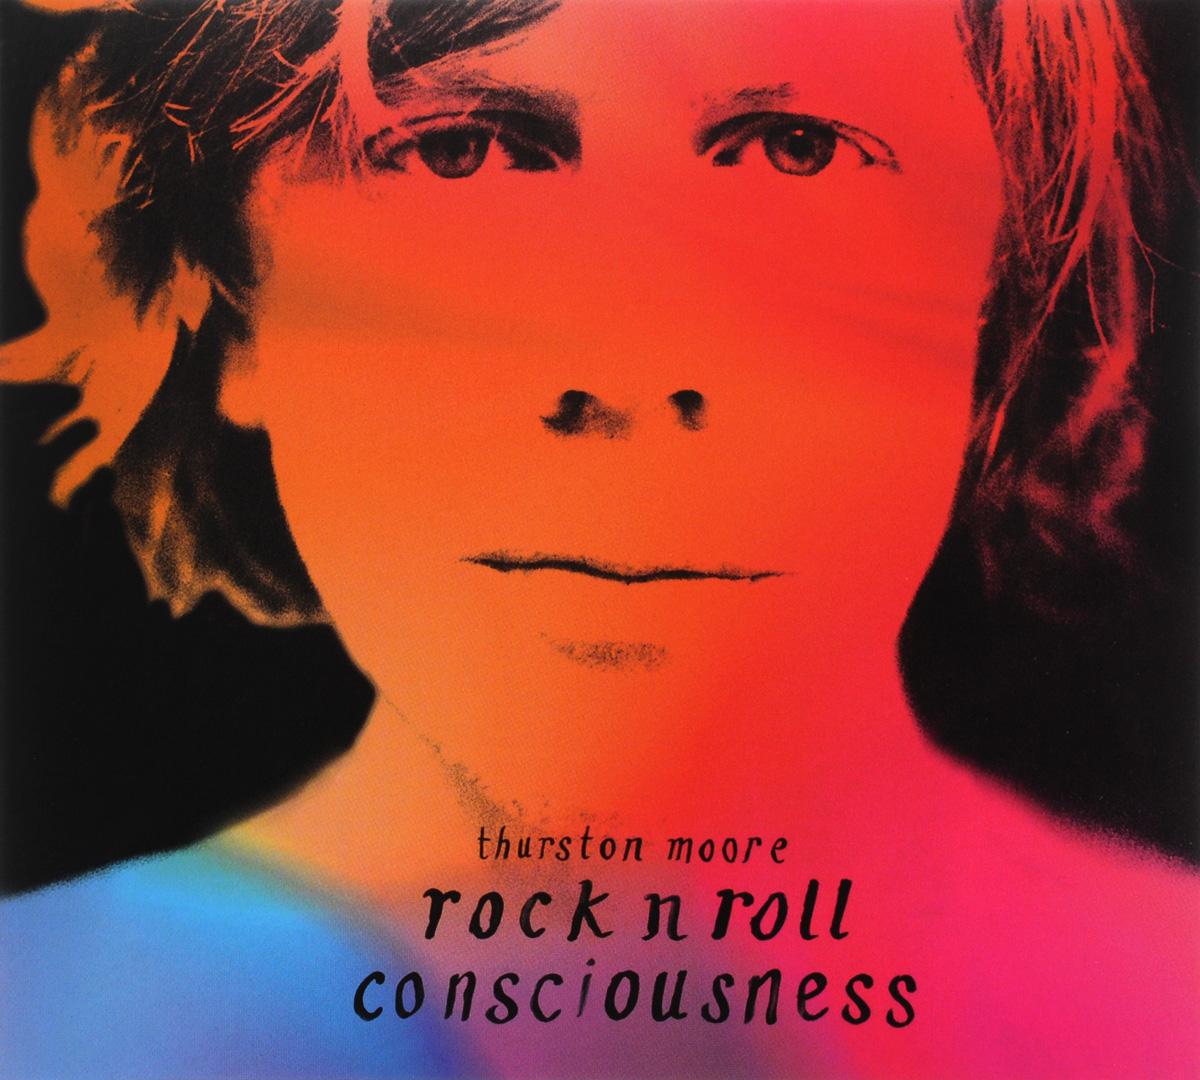 Thurston Moore Thurston Moore. Rock N Roll Consciousness consciousness and meaning